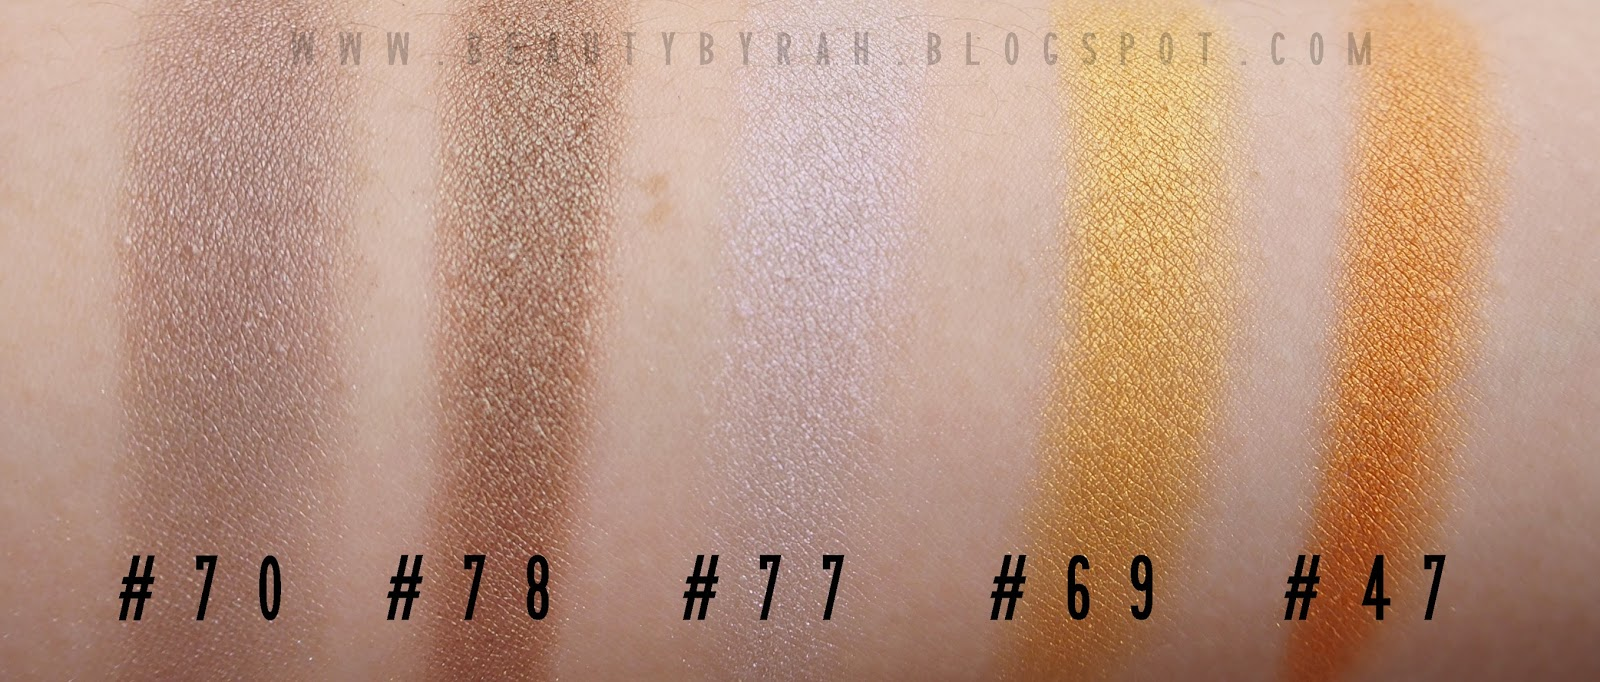 Morphe brushes single eyeshadow swatches gold and bronze